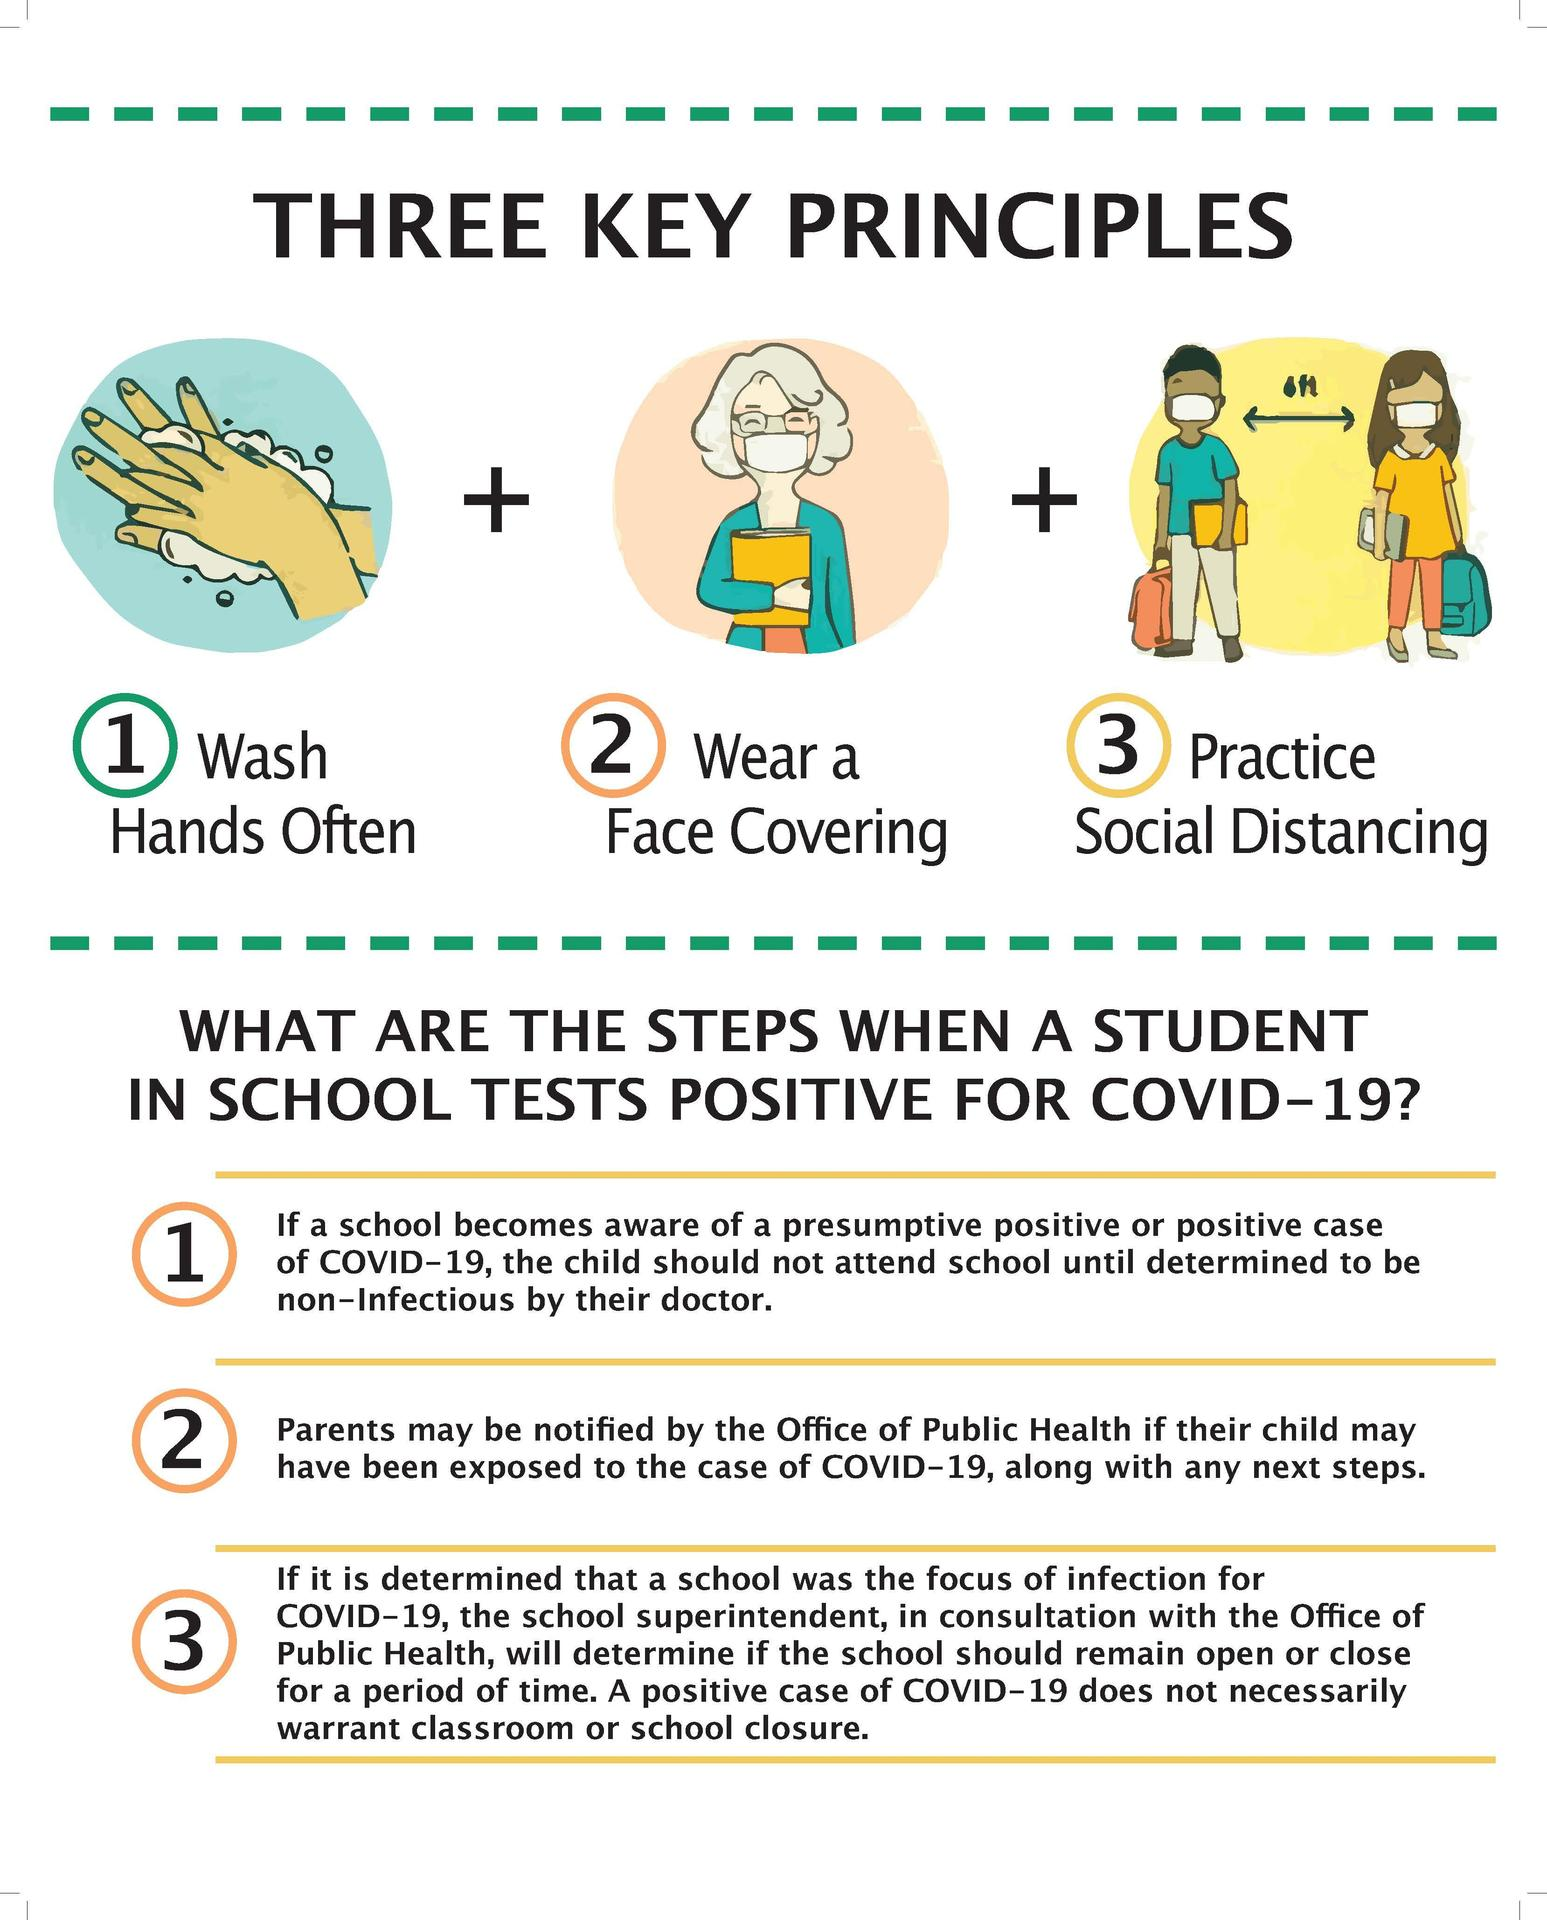 a poster that provided the 3 key principles to fighting Covid-19